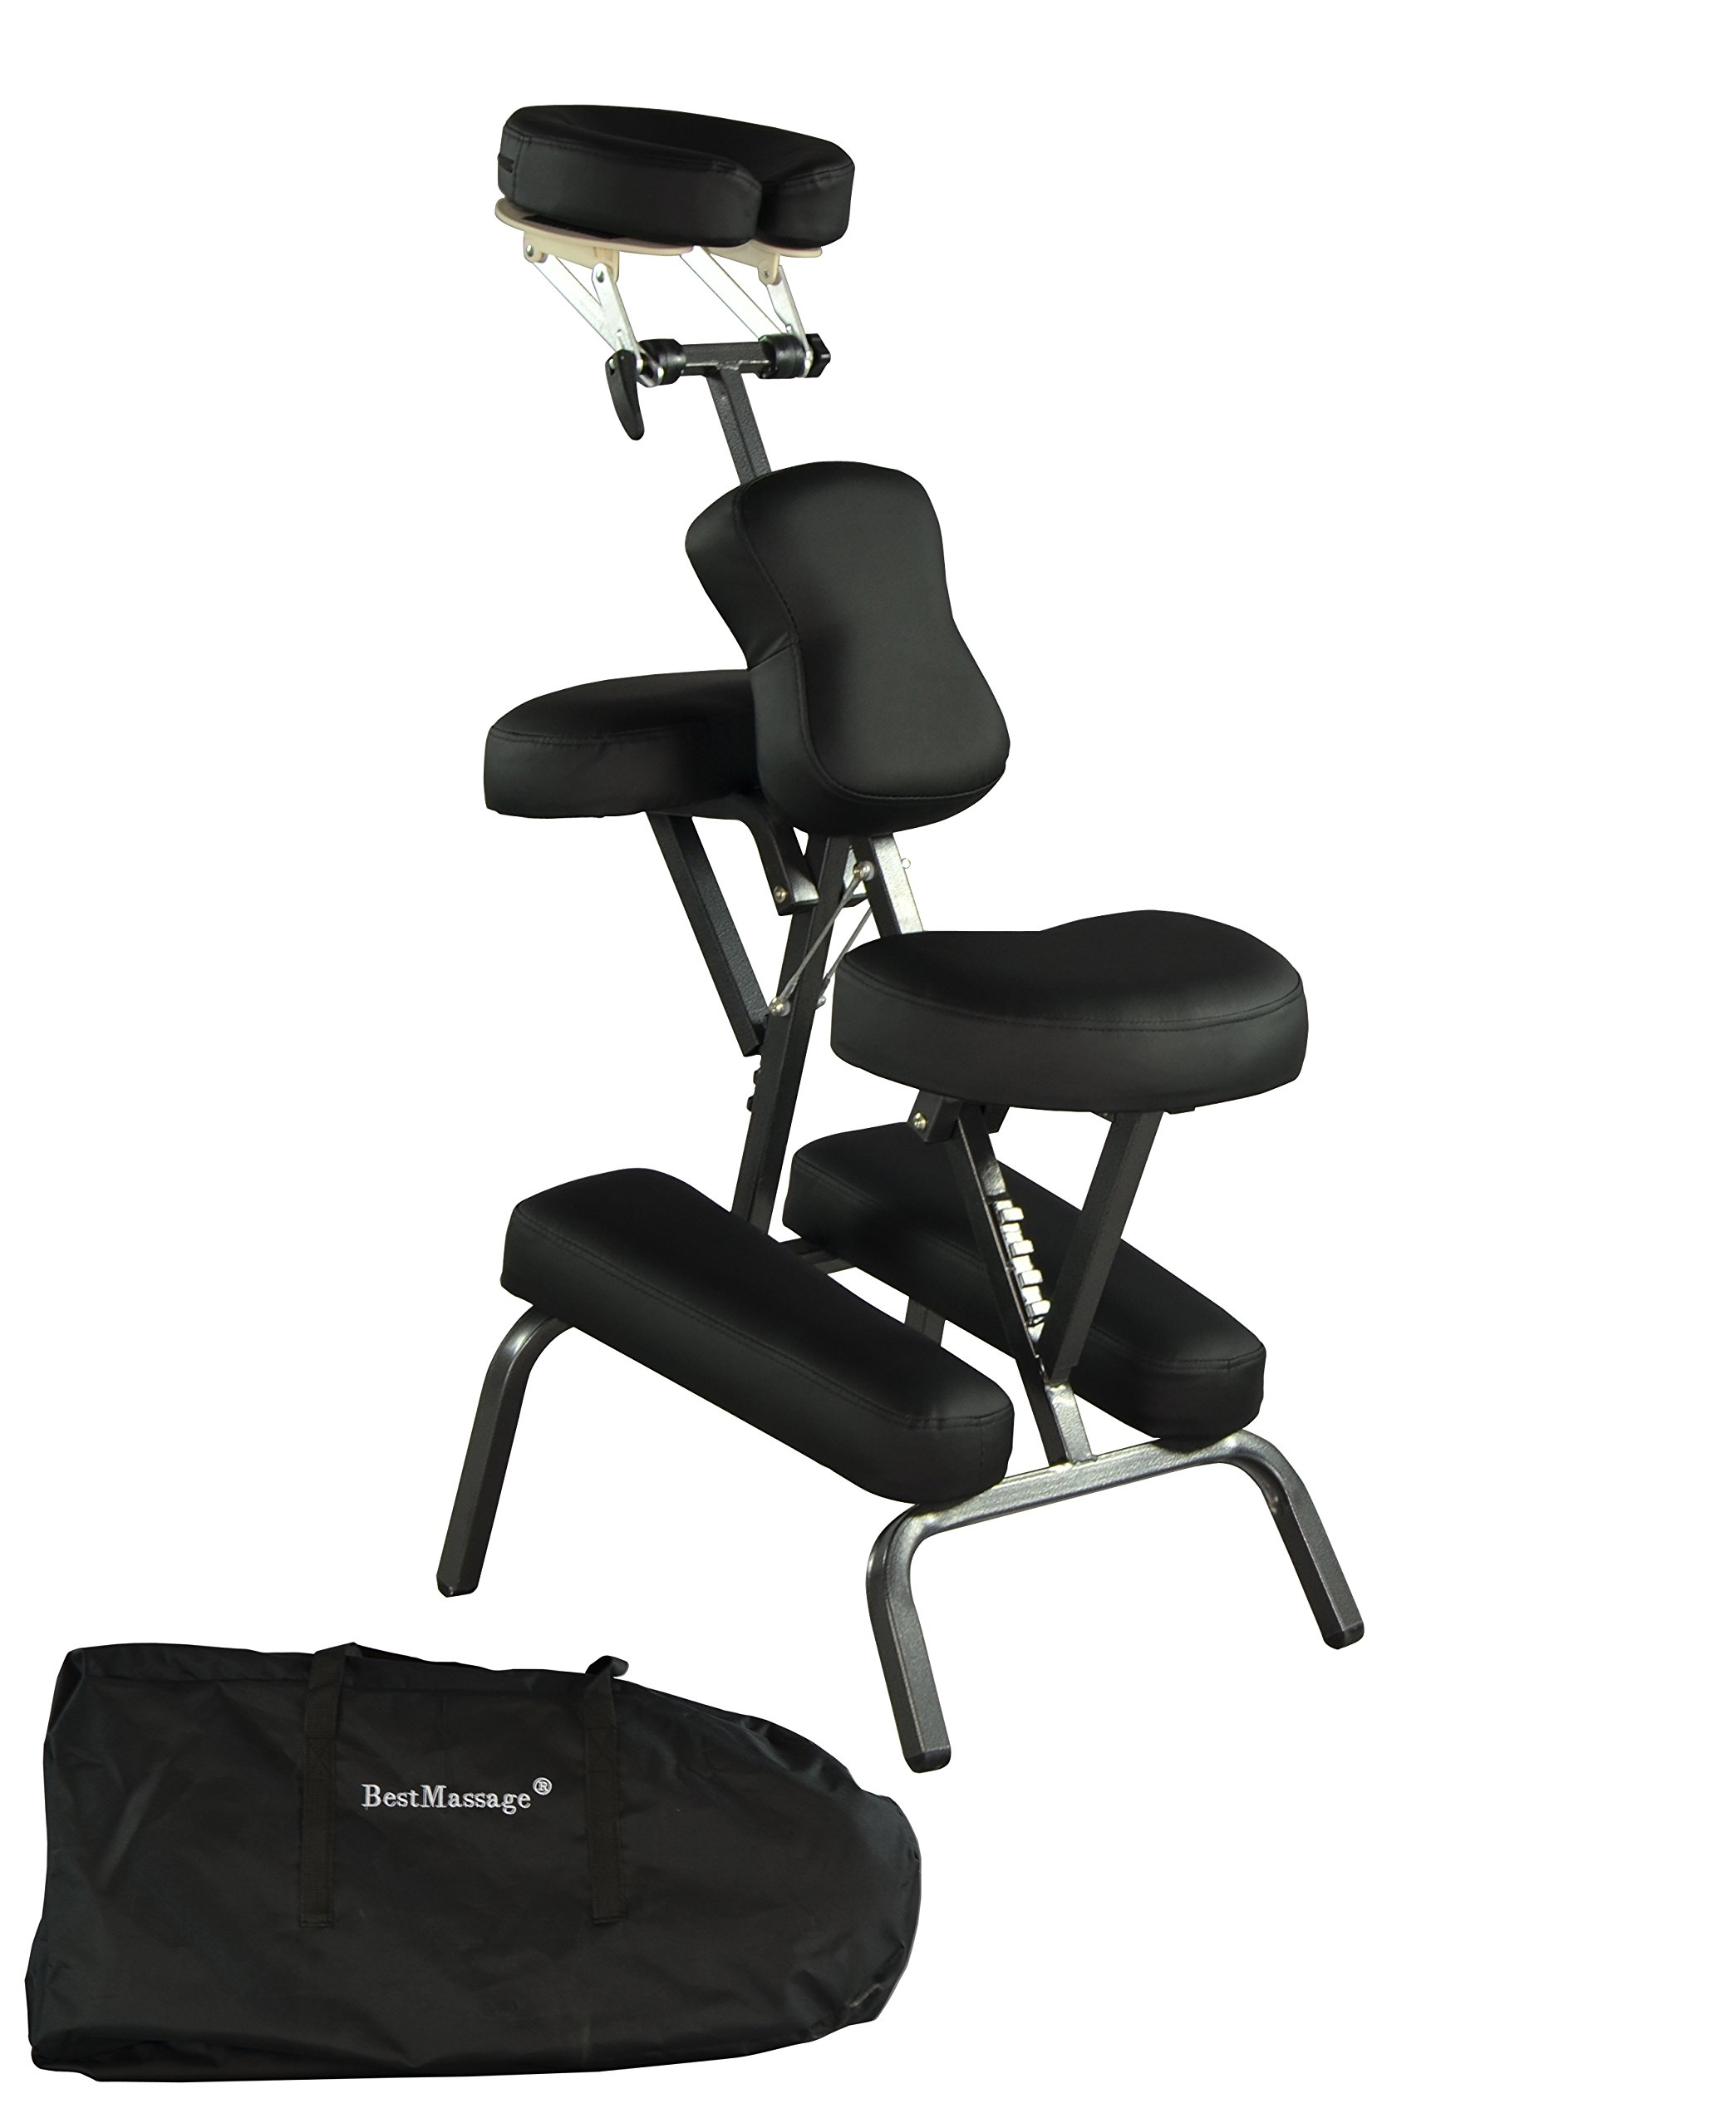 Portable Massage Chair Comfort 4'' Thick Foam Light Weight Best Massage Brand With Free Carrying Bag BLACK